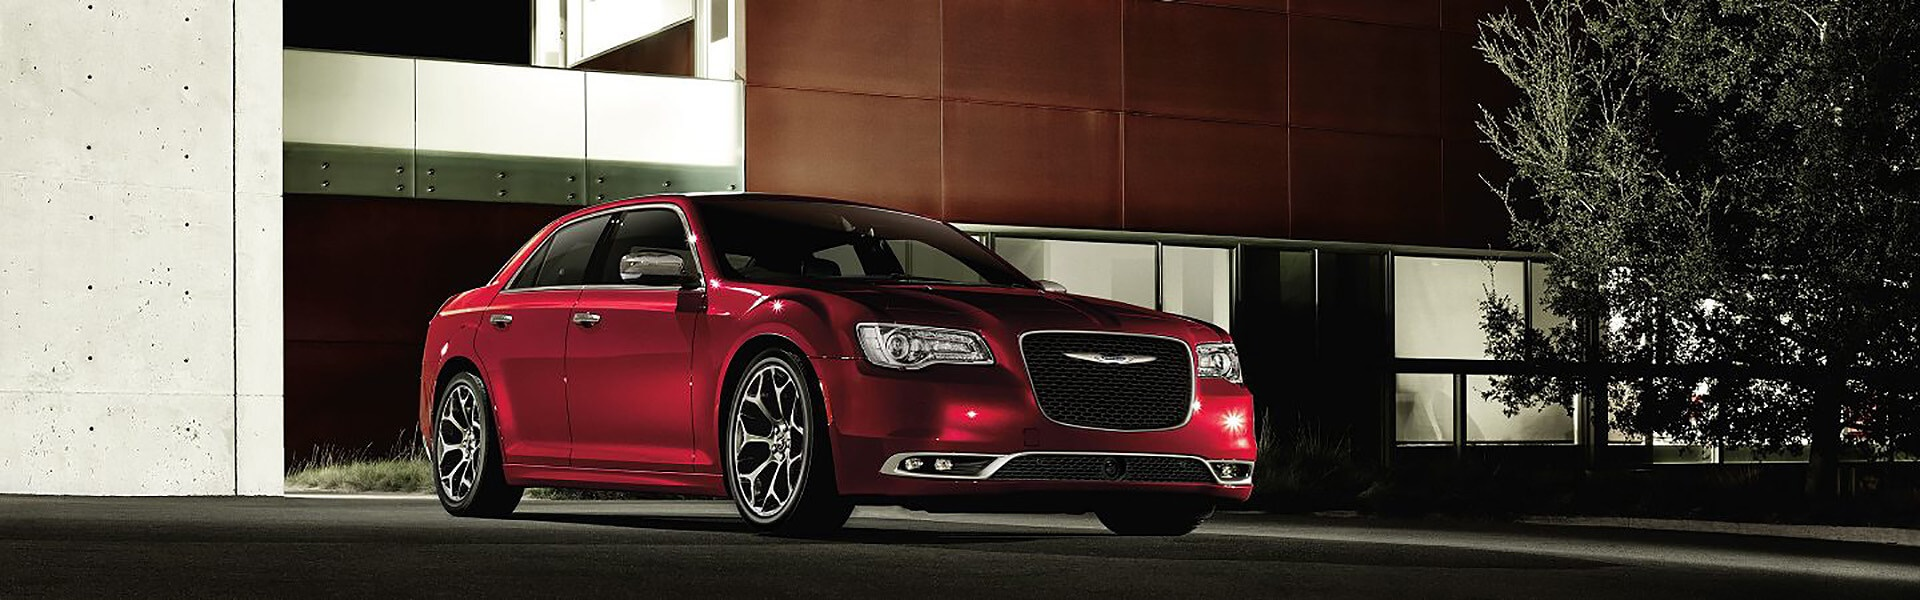 Chrysler 300C Luxury Exterior